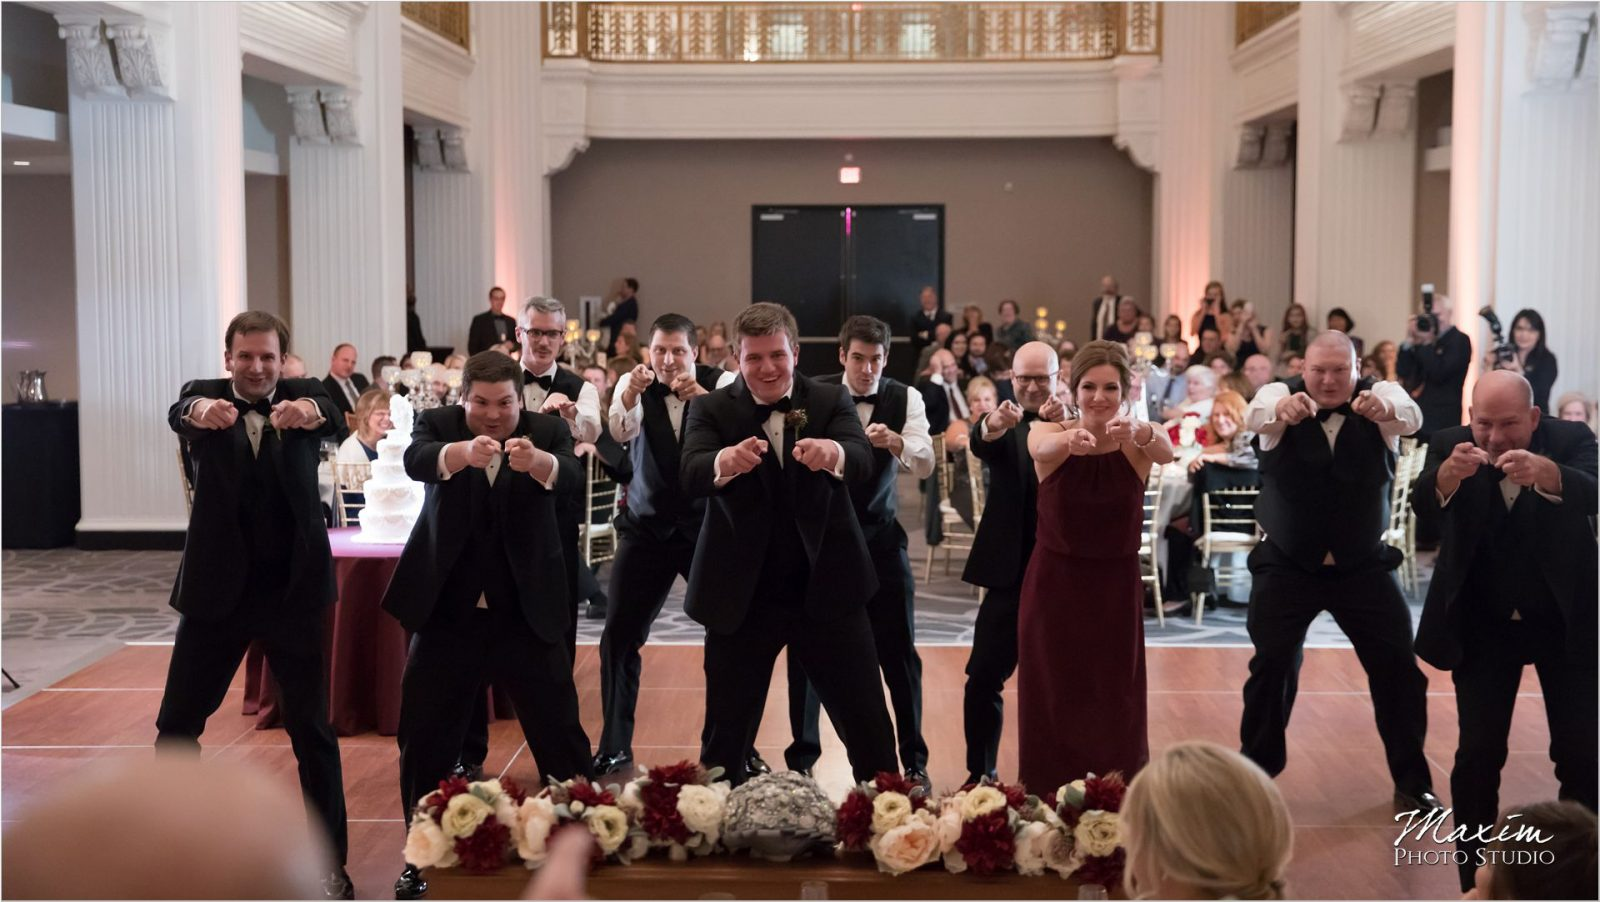 Walker Texas Ranger Dance Renaissance Hotel Cincinnati Wedding